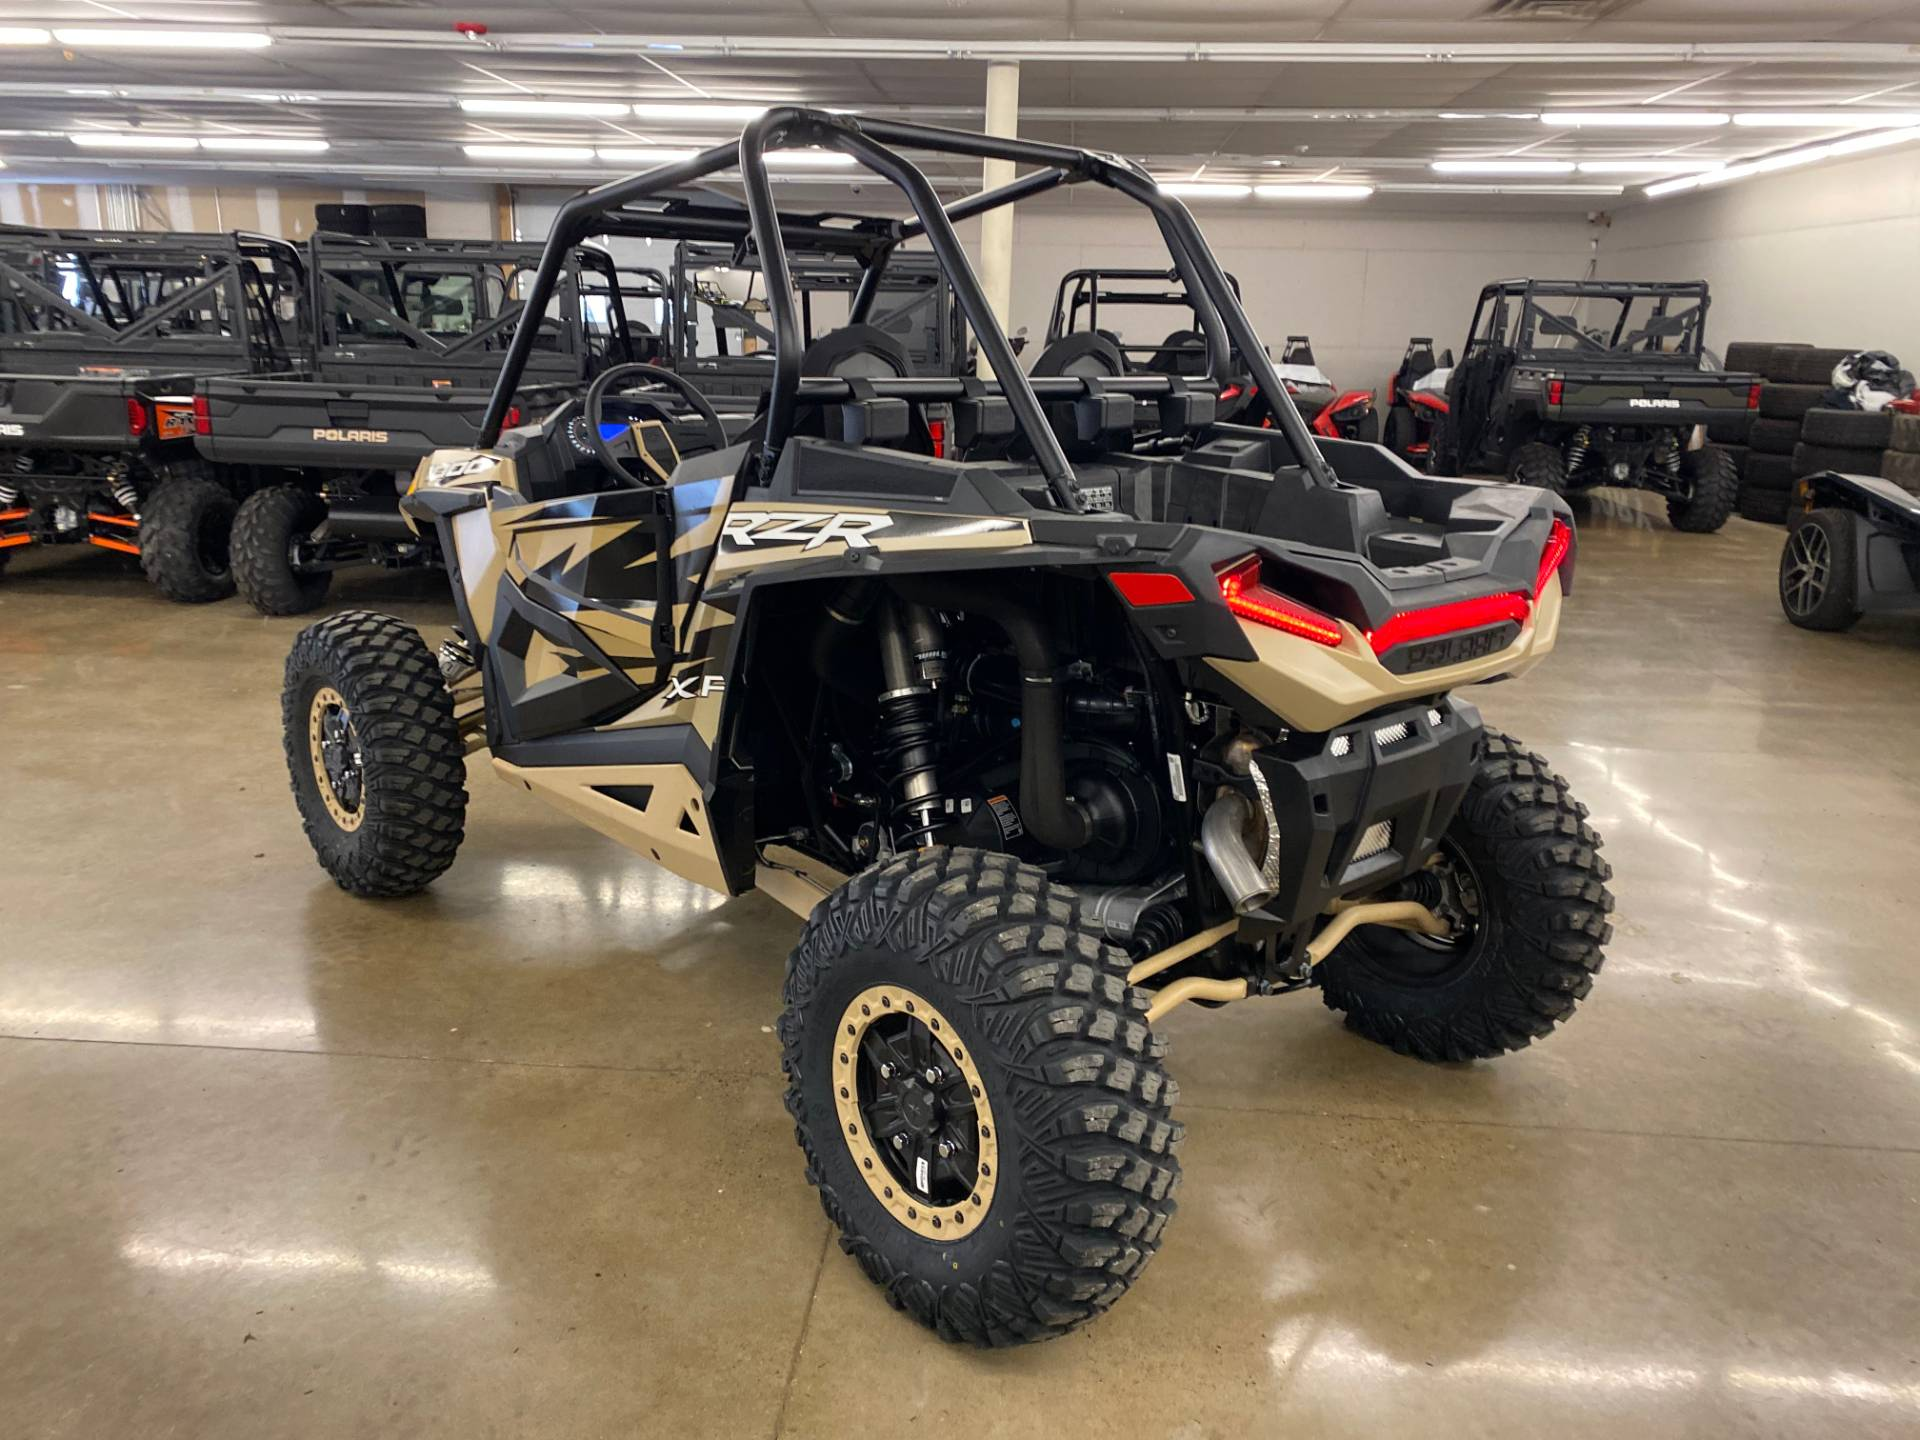 2020 Polaris RZR XP 1000 Trails & Rocks in Chicora, Pennsylvania - Photo 6